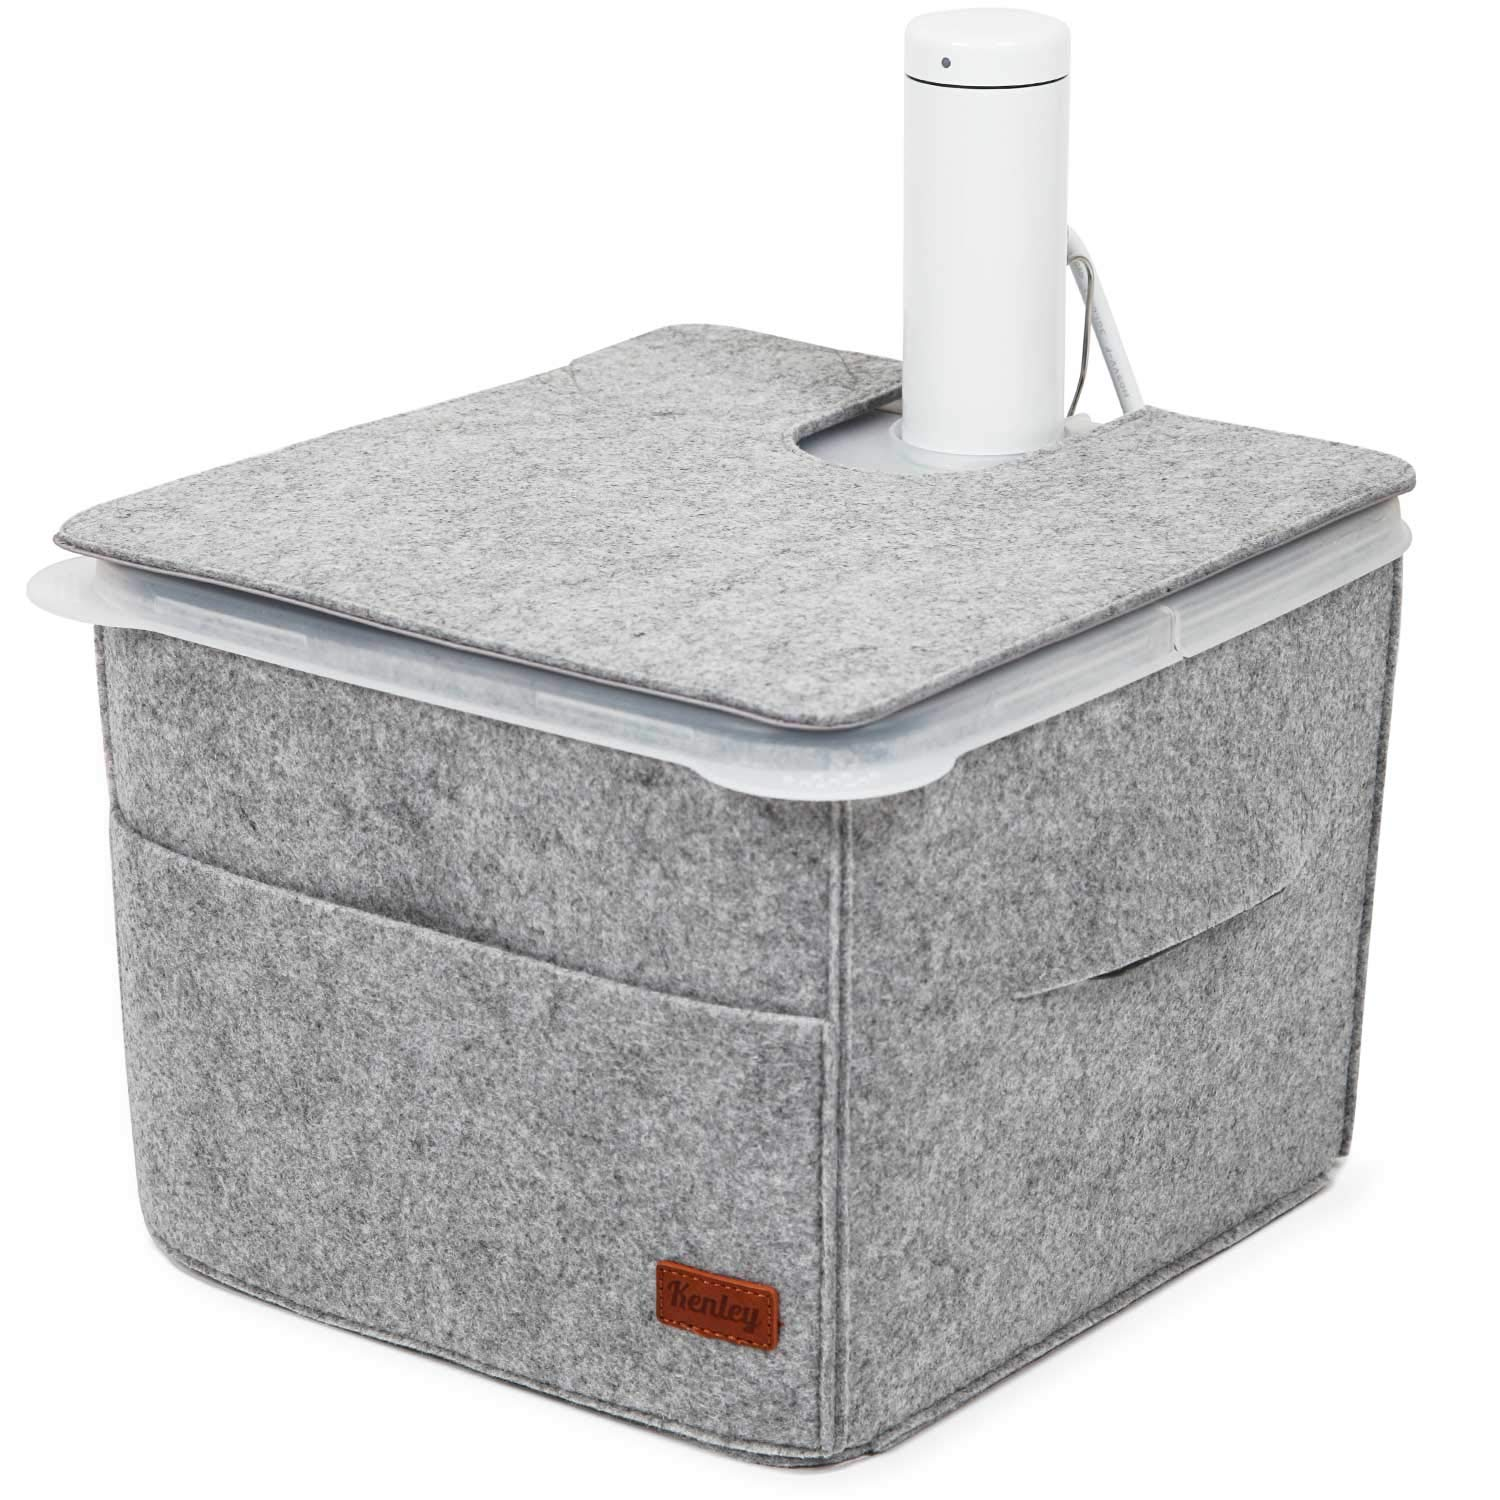 Sous Vide Container Sleeve - Insulating Cover for Rubbermaid 12 Quart Container with Lid - Heat Retention & Countertop Protection - Compatible with Side & Corner Mount Lids & Accessories by Kenley